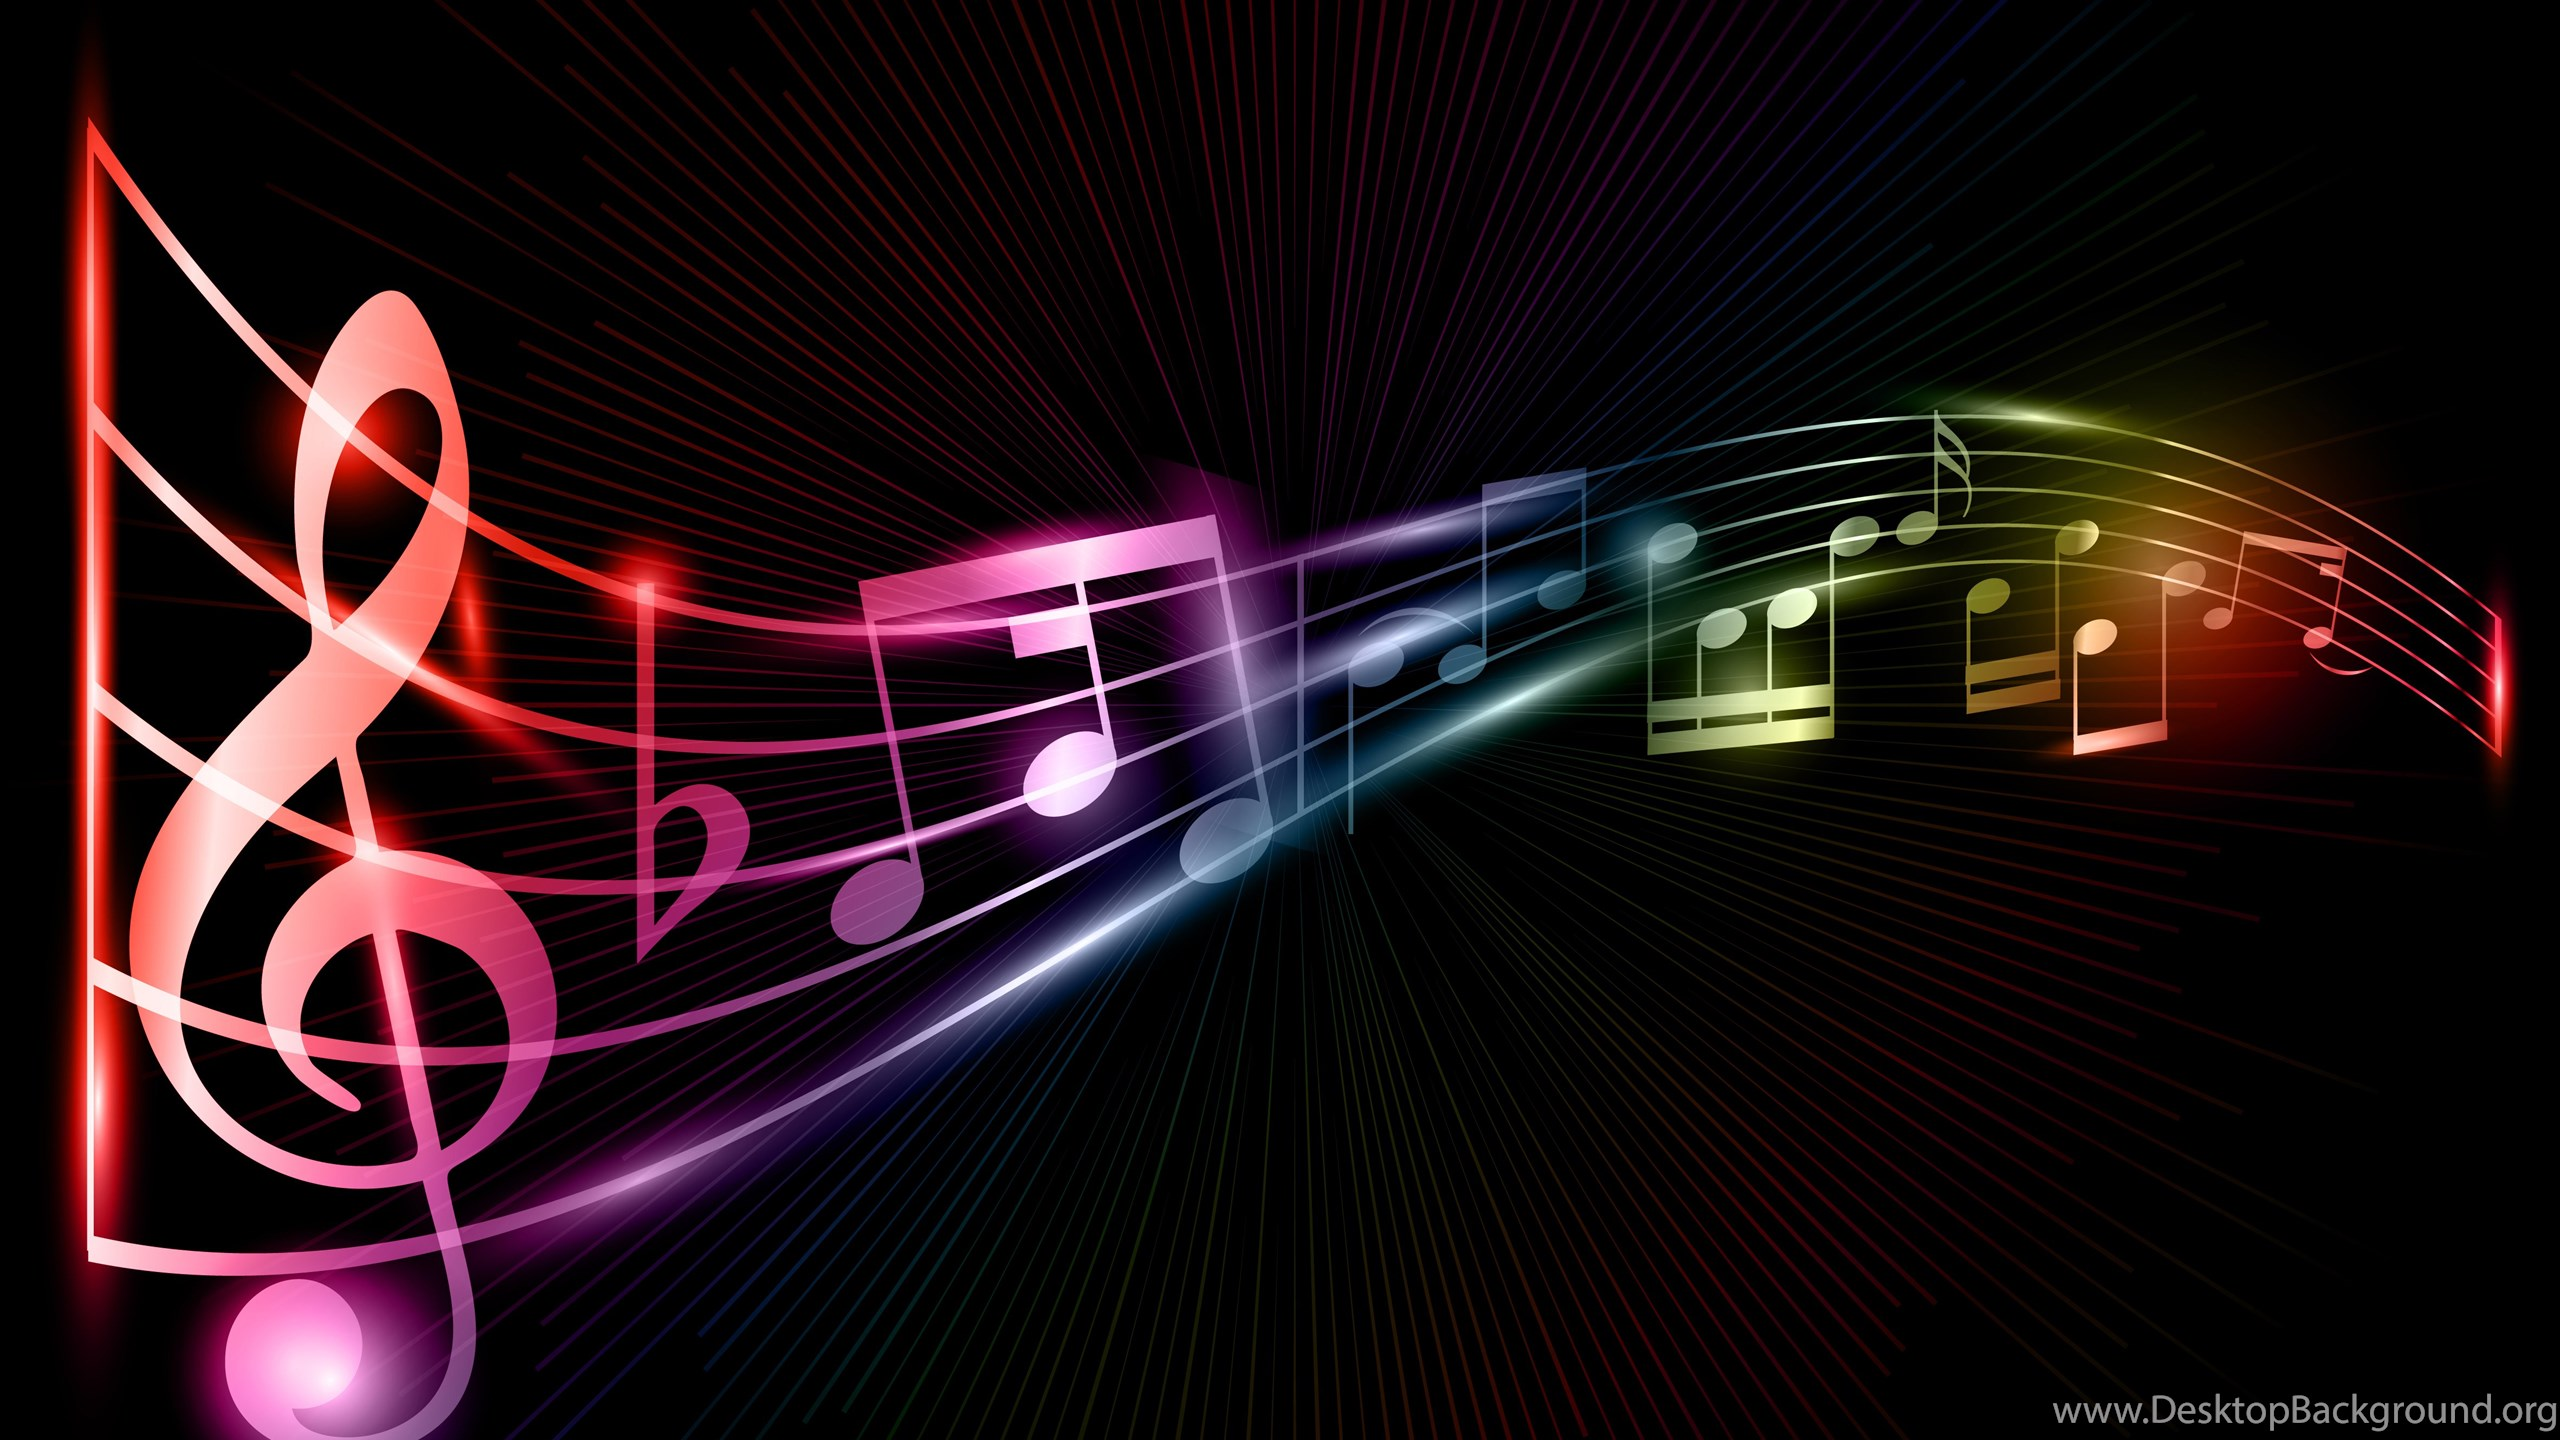 Music Background Images: Cool Rainbow Music Backgrounds Desktop Background